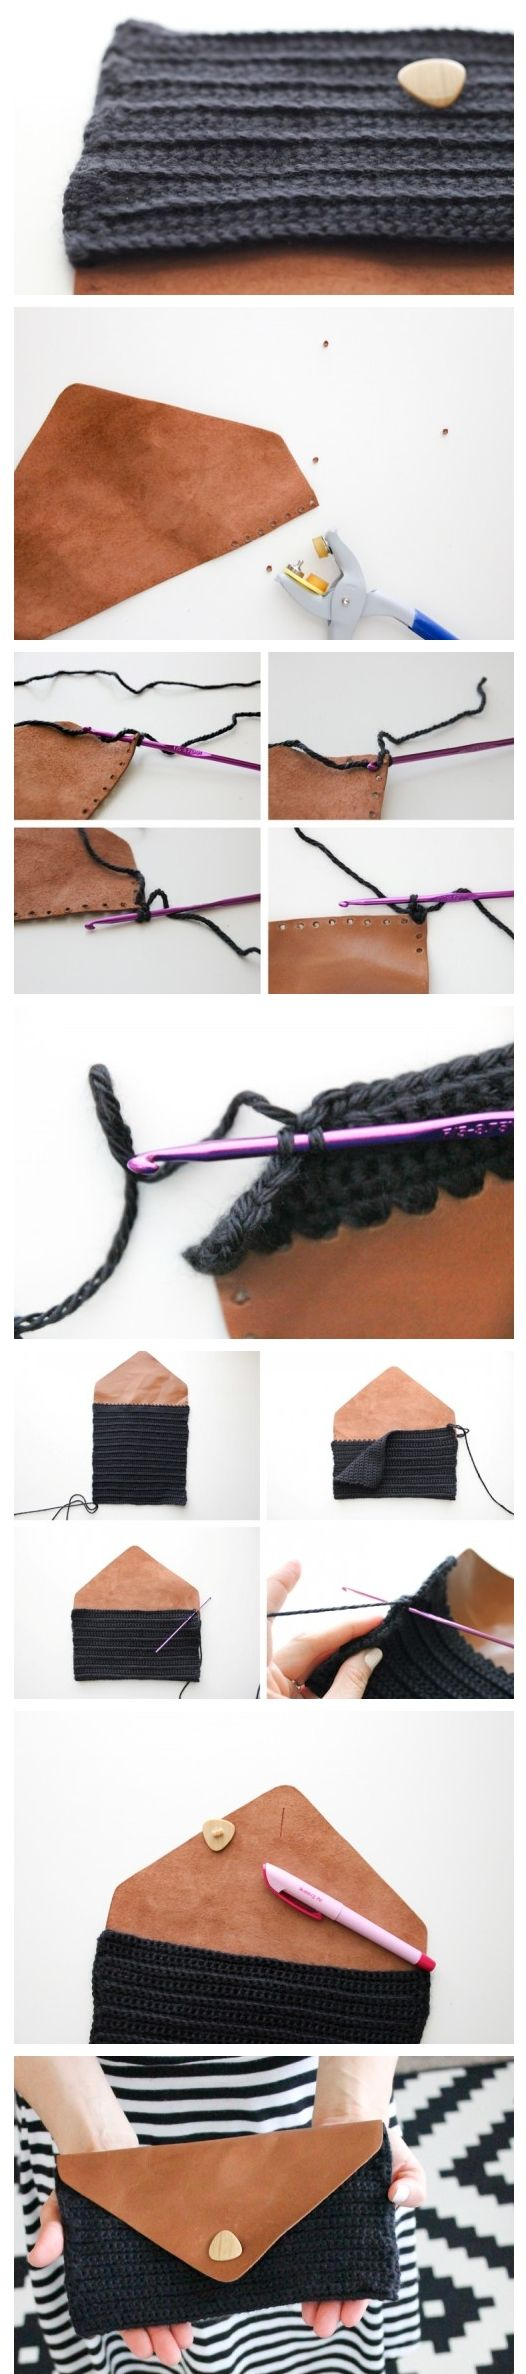 Cool DIY Crocheted Leather Flap Clutch Teresa Restegui http://www.pinterest.com/teretegui/ - pochette pelle ed uncinetto